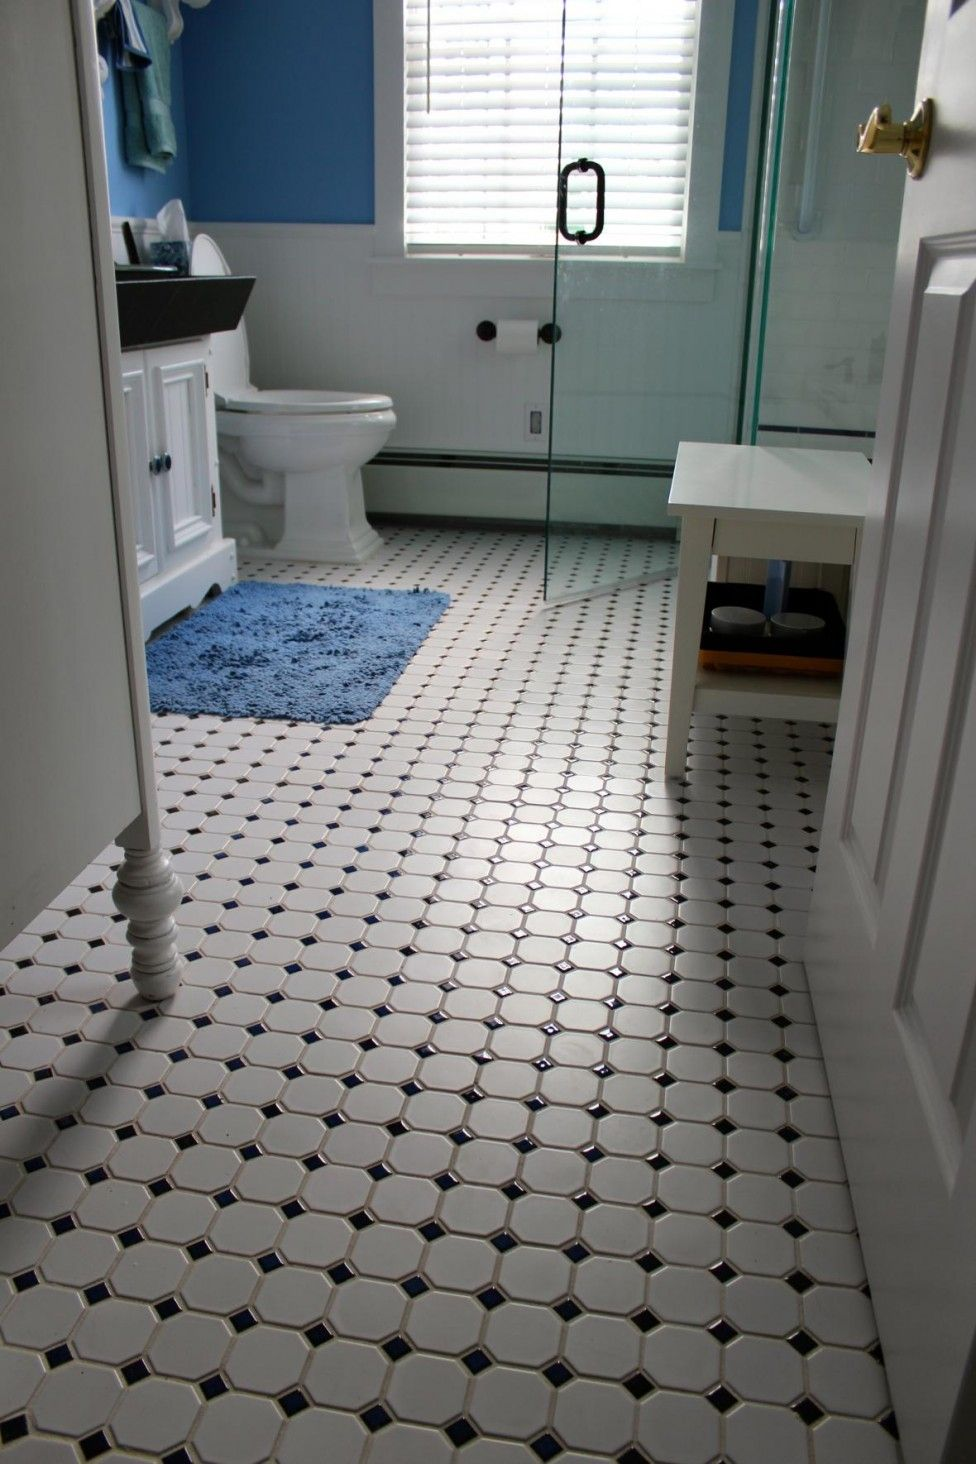 Appealing Black And White Bathrooms Tile Octagon With